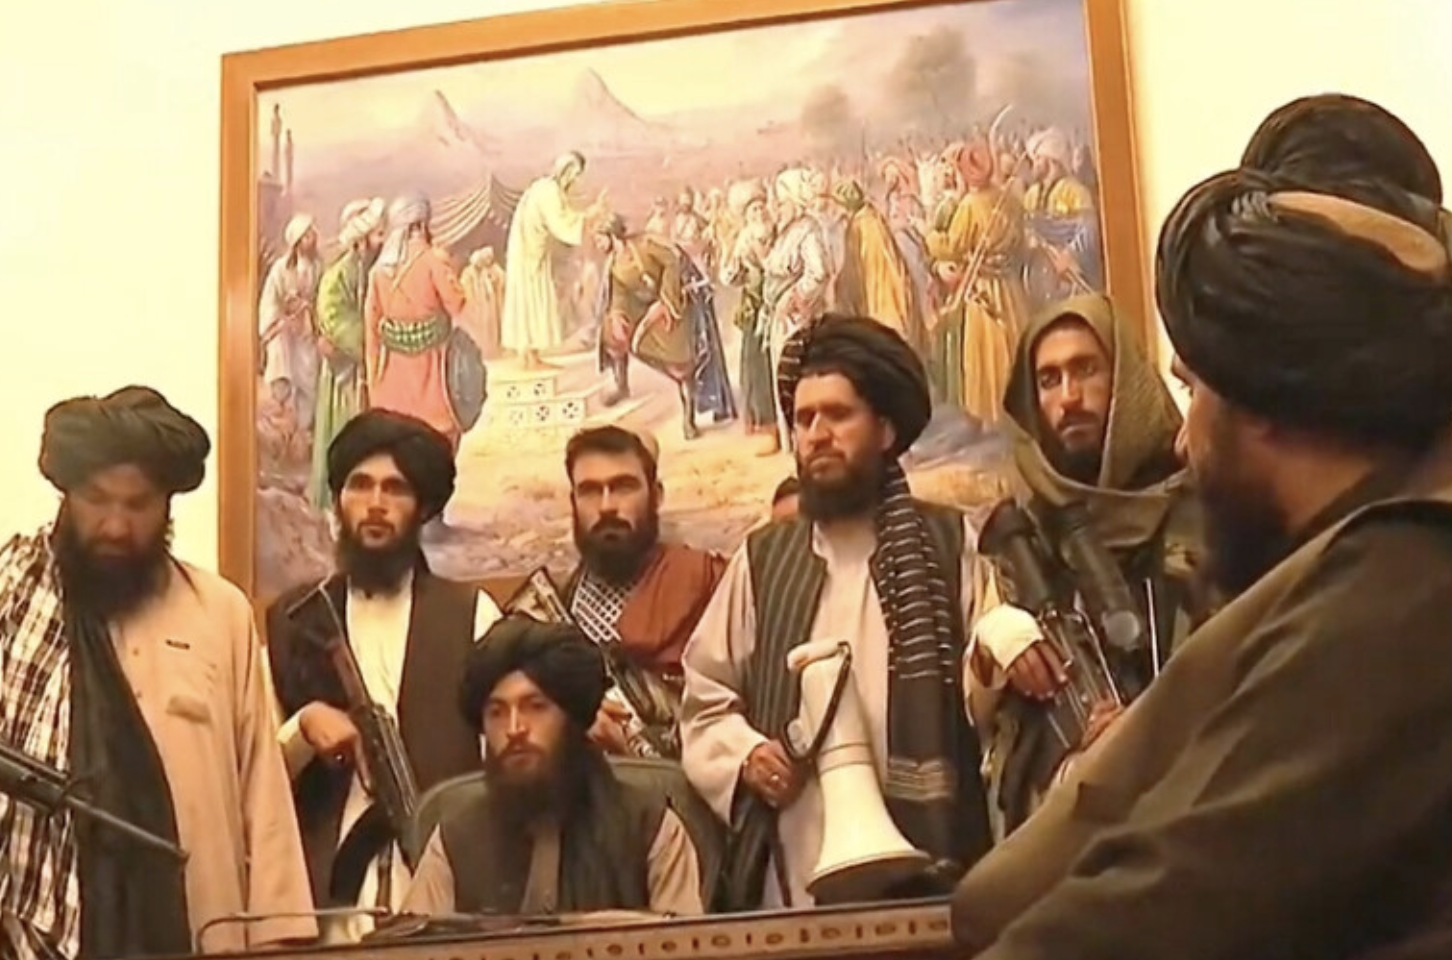 A group of Taliban fighters in a government office in Kabul, Afghanistan, the day they took control of the country, August 15, 2021. (Photo by Daniel Moskowitz) Public domain